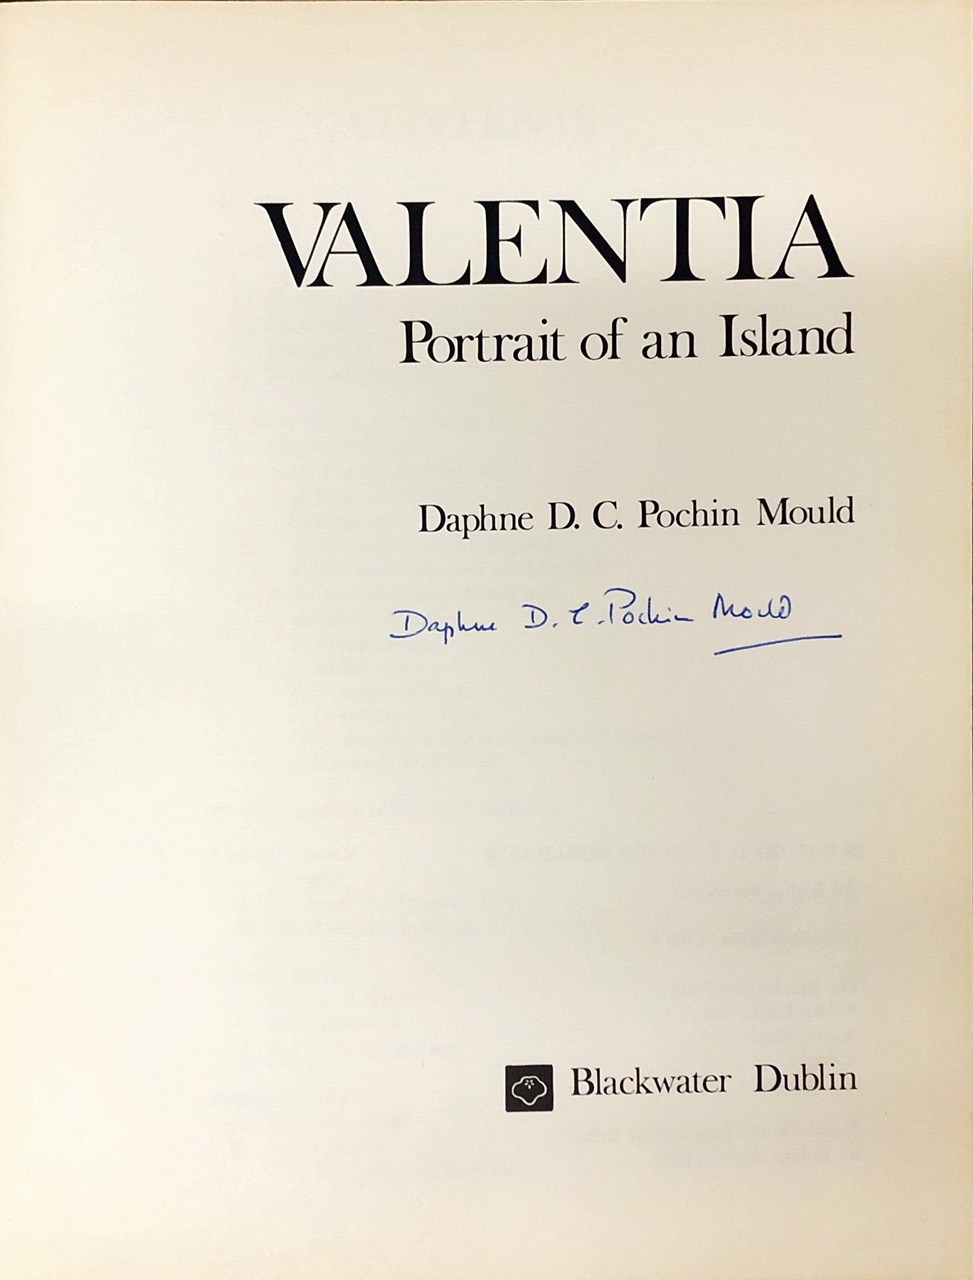 Lot 59 - Pochin Mould (D.D.C.) Valentia, Portrait of an Island, 4to D.